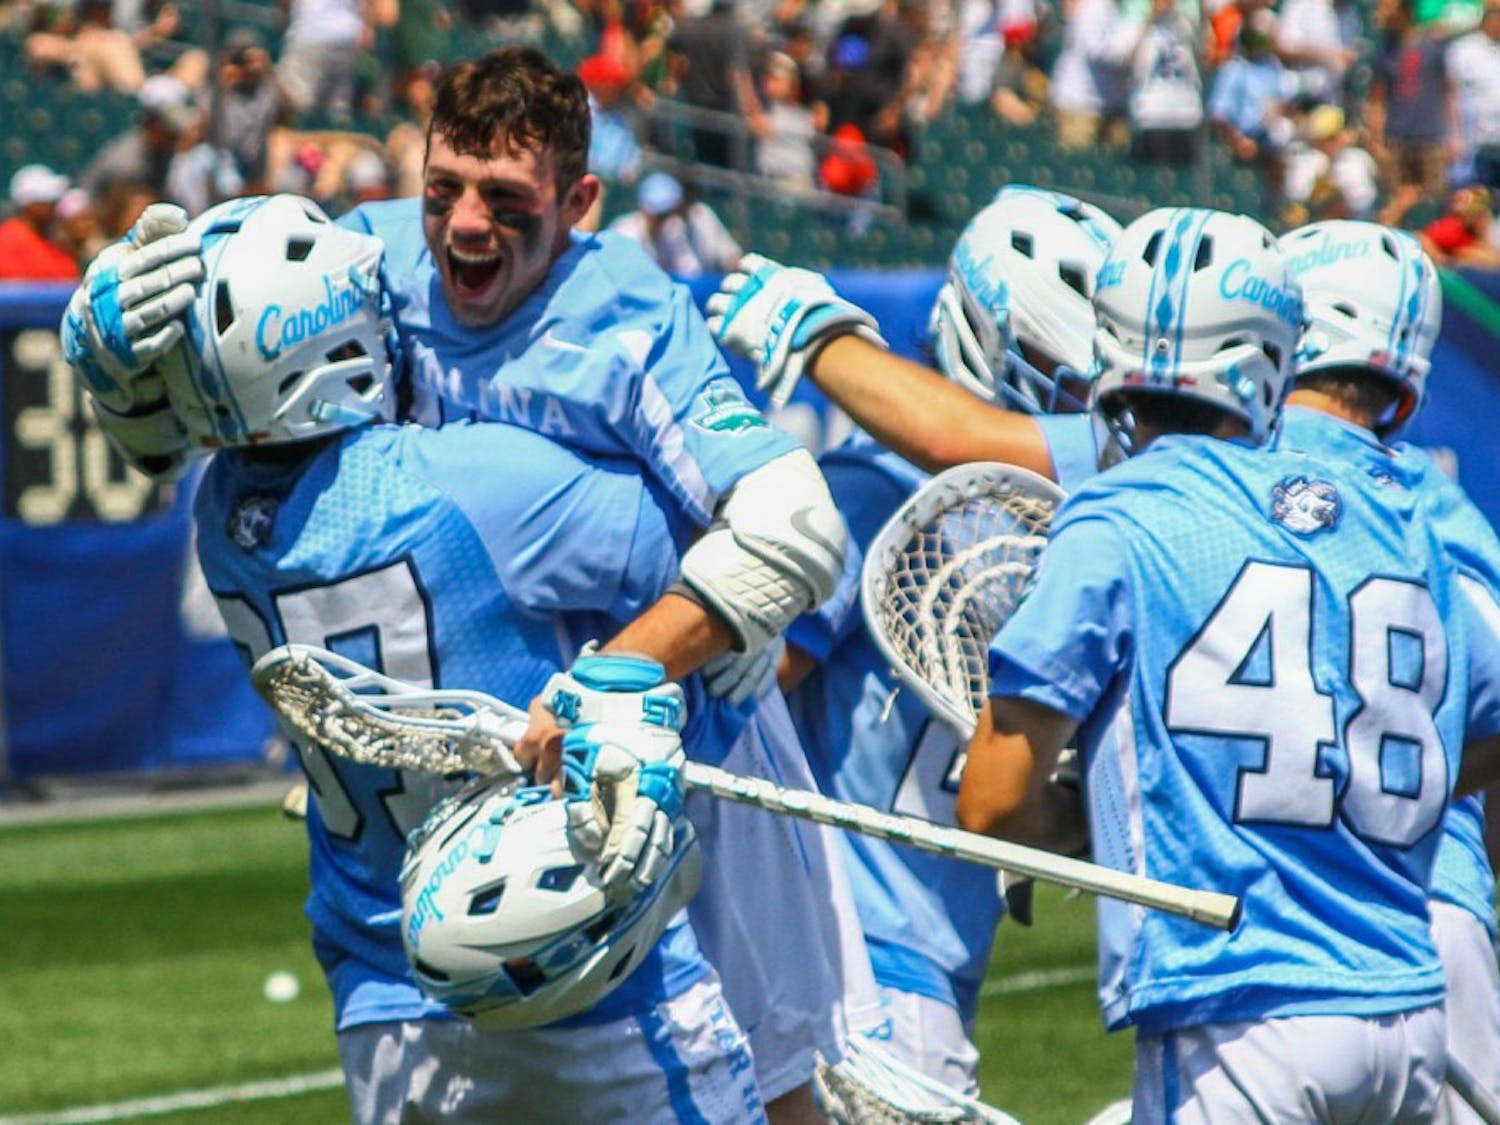 The North Carolina men's lacrosse team defeated Loyola Maryland 18-13 in the NCAA semifinals at Lincoln Financial Field in Philadelphia on Saturday.